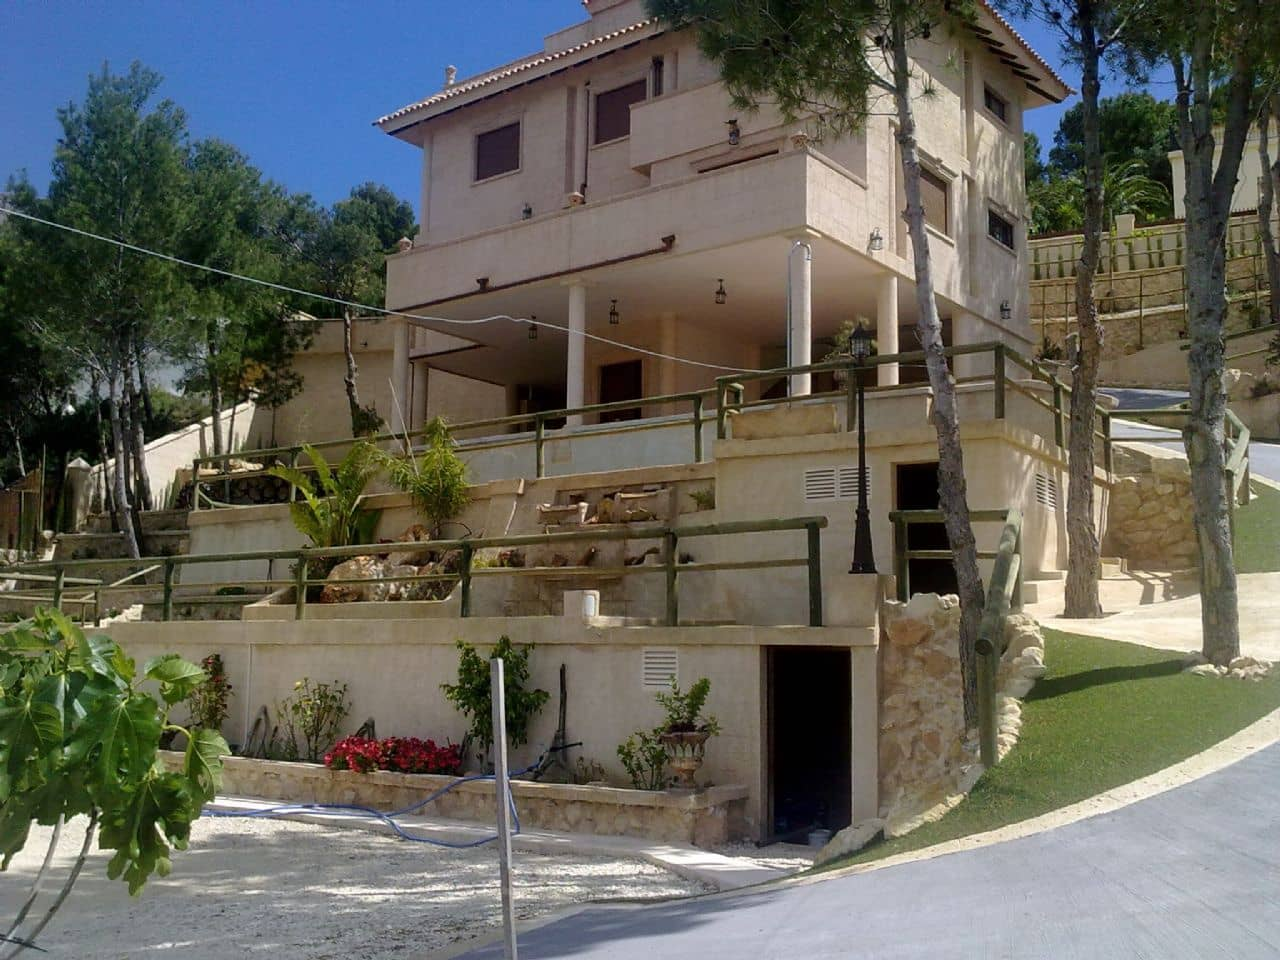 4 bedroom Villa for sale in Altea la Vella with pool garage - € 750,000 (Ref: 3099584)